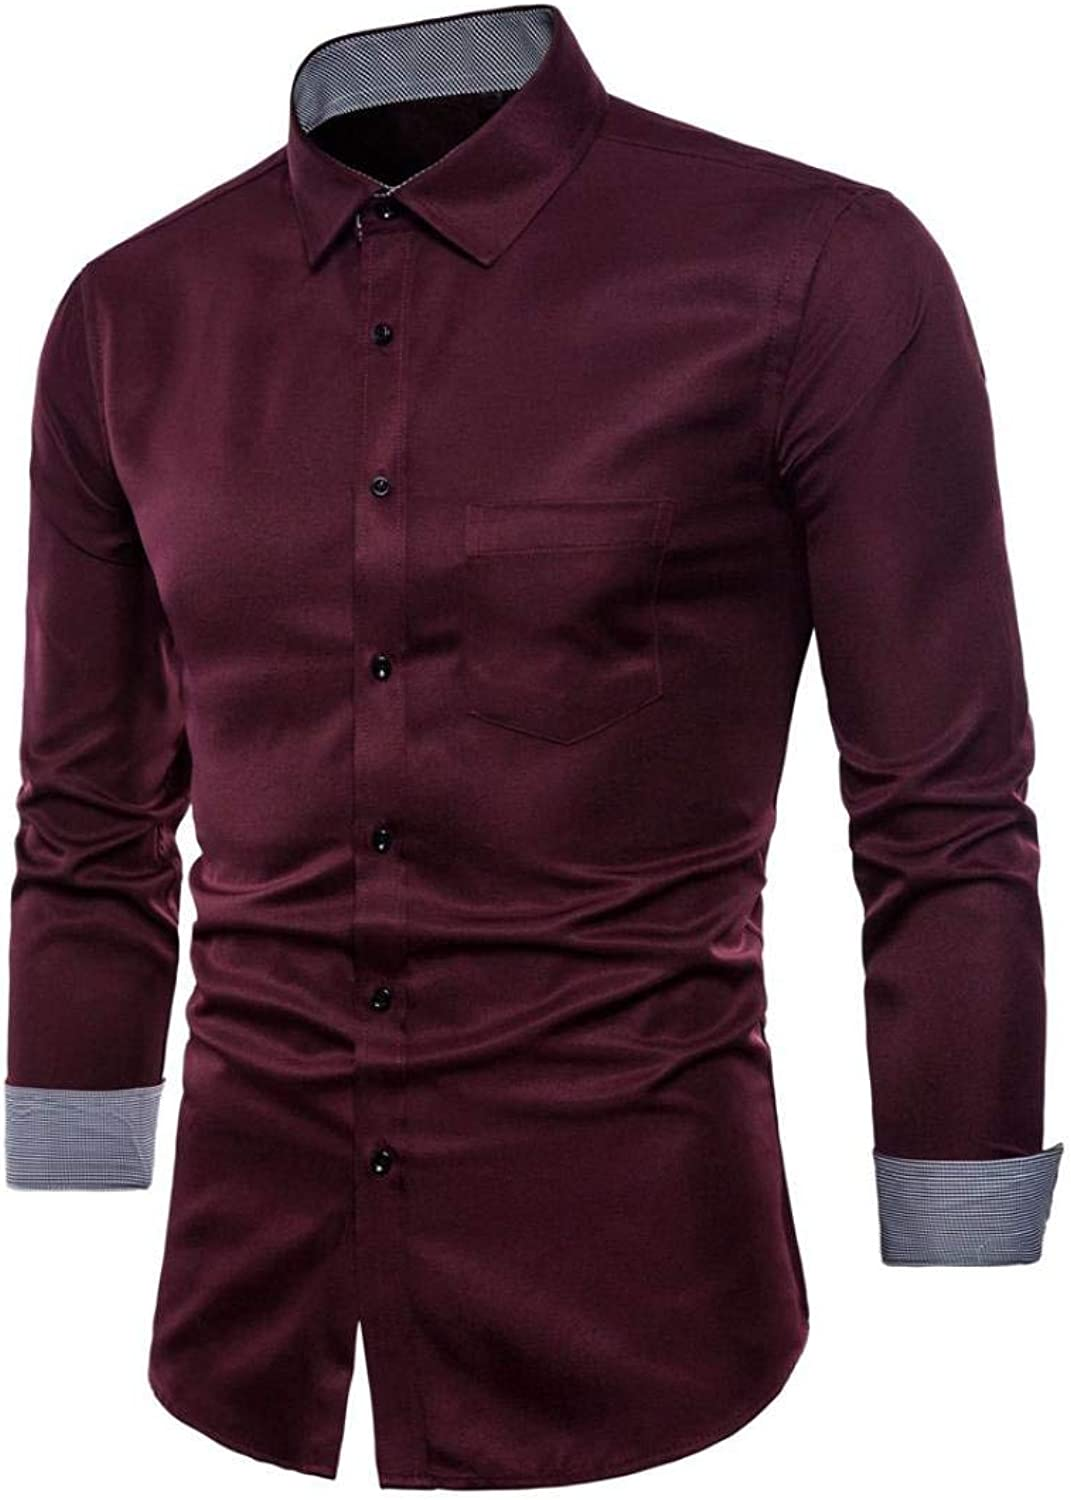 Upper outer outer outer garment Men's Long Sleeve Oxford Formal Hatsuits Casual Suits Slim Elegant Leisure Stylish Fit T-shirt Shirts Blouse Top d3c63e